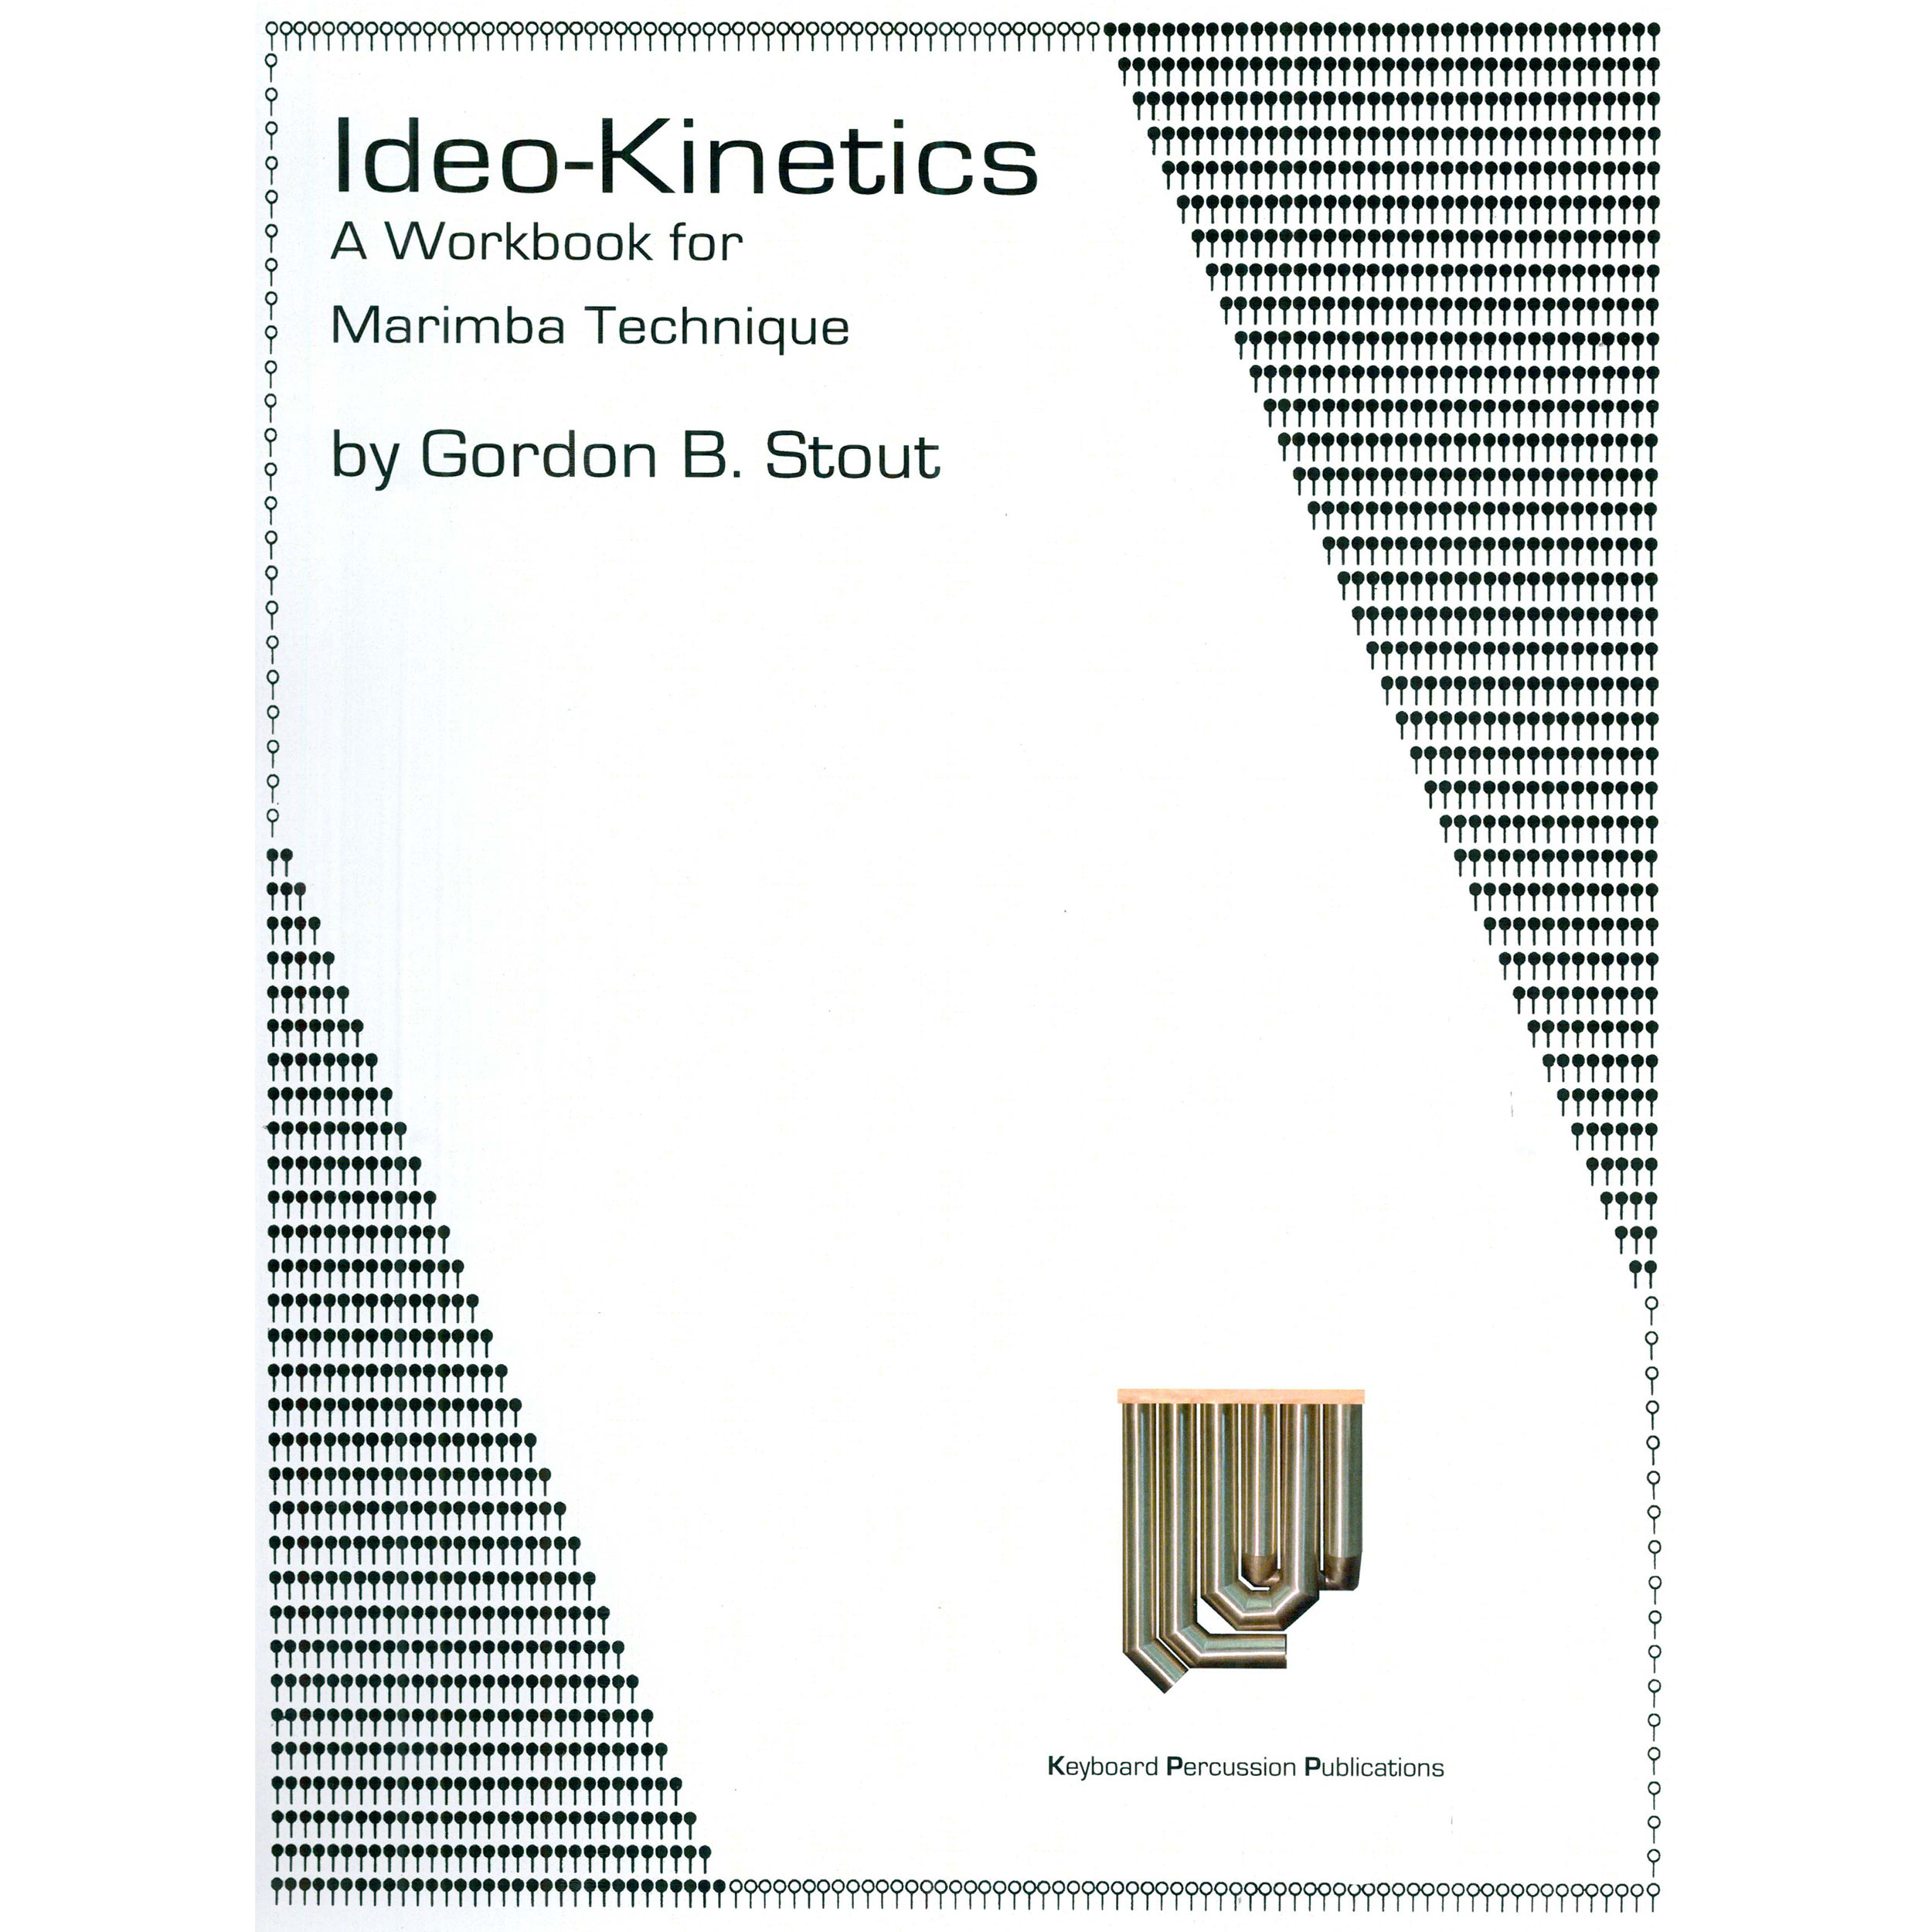 Ideo-Kinetics by Gordon Stout